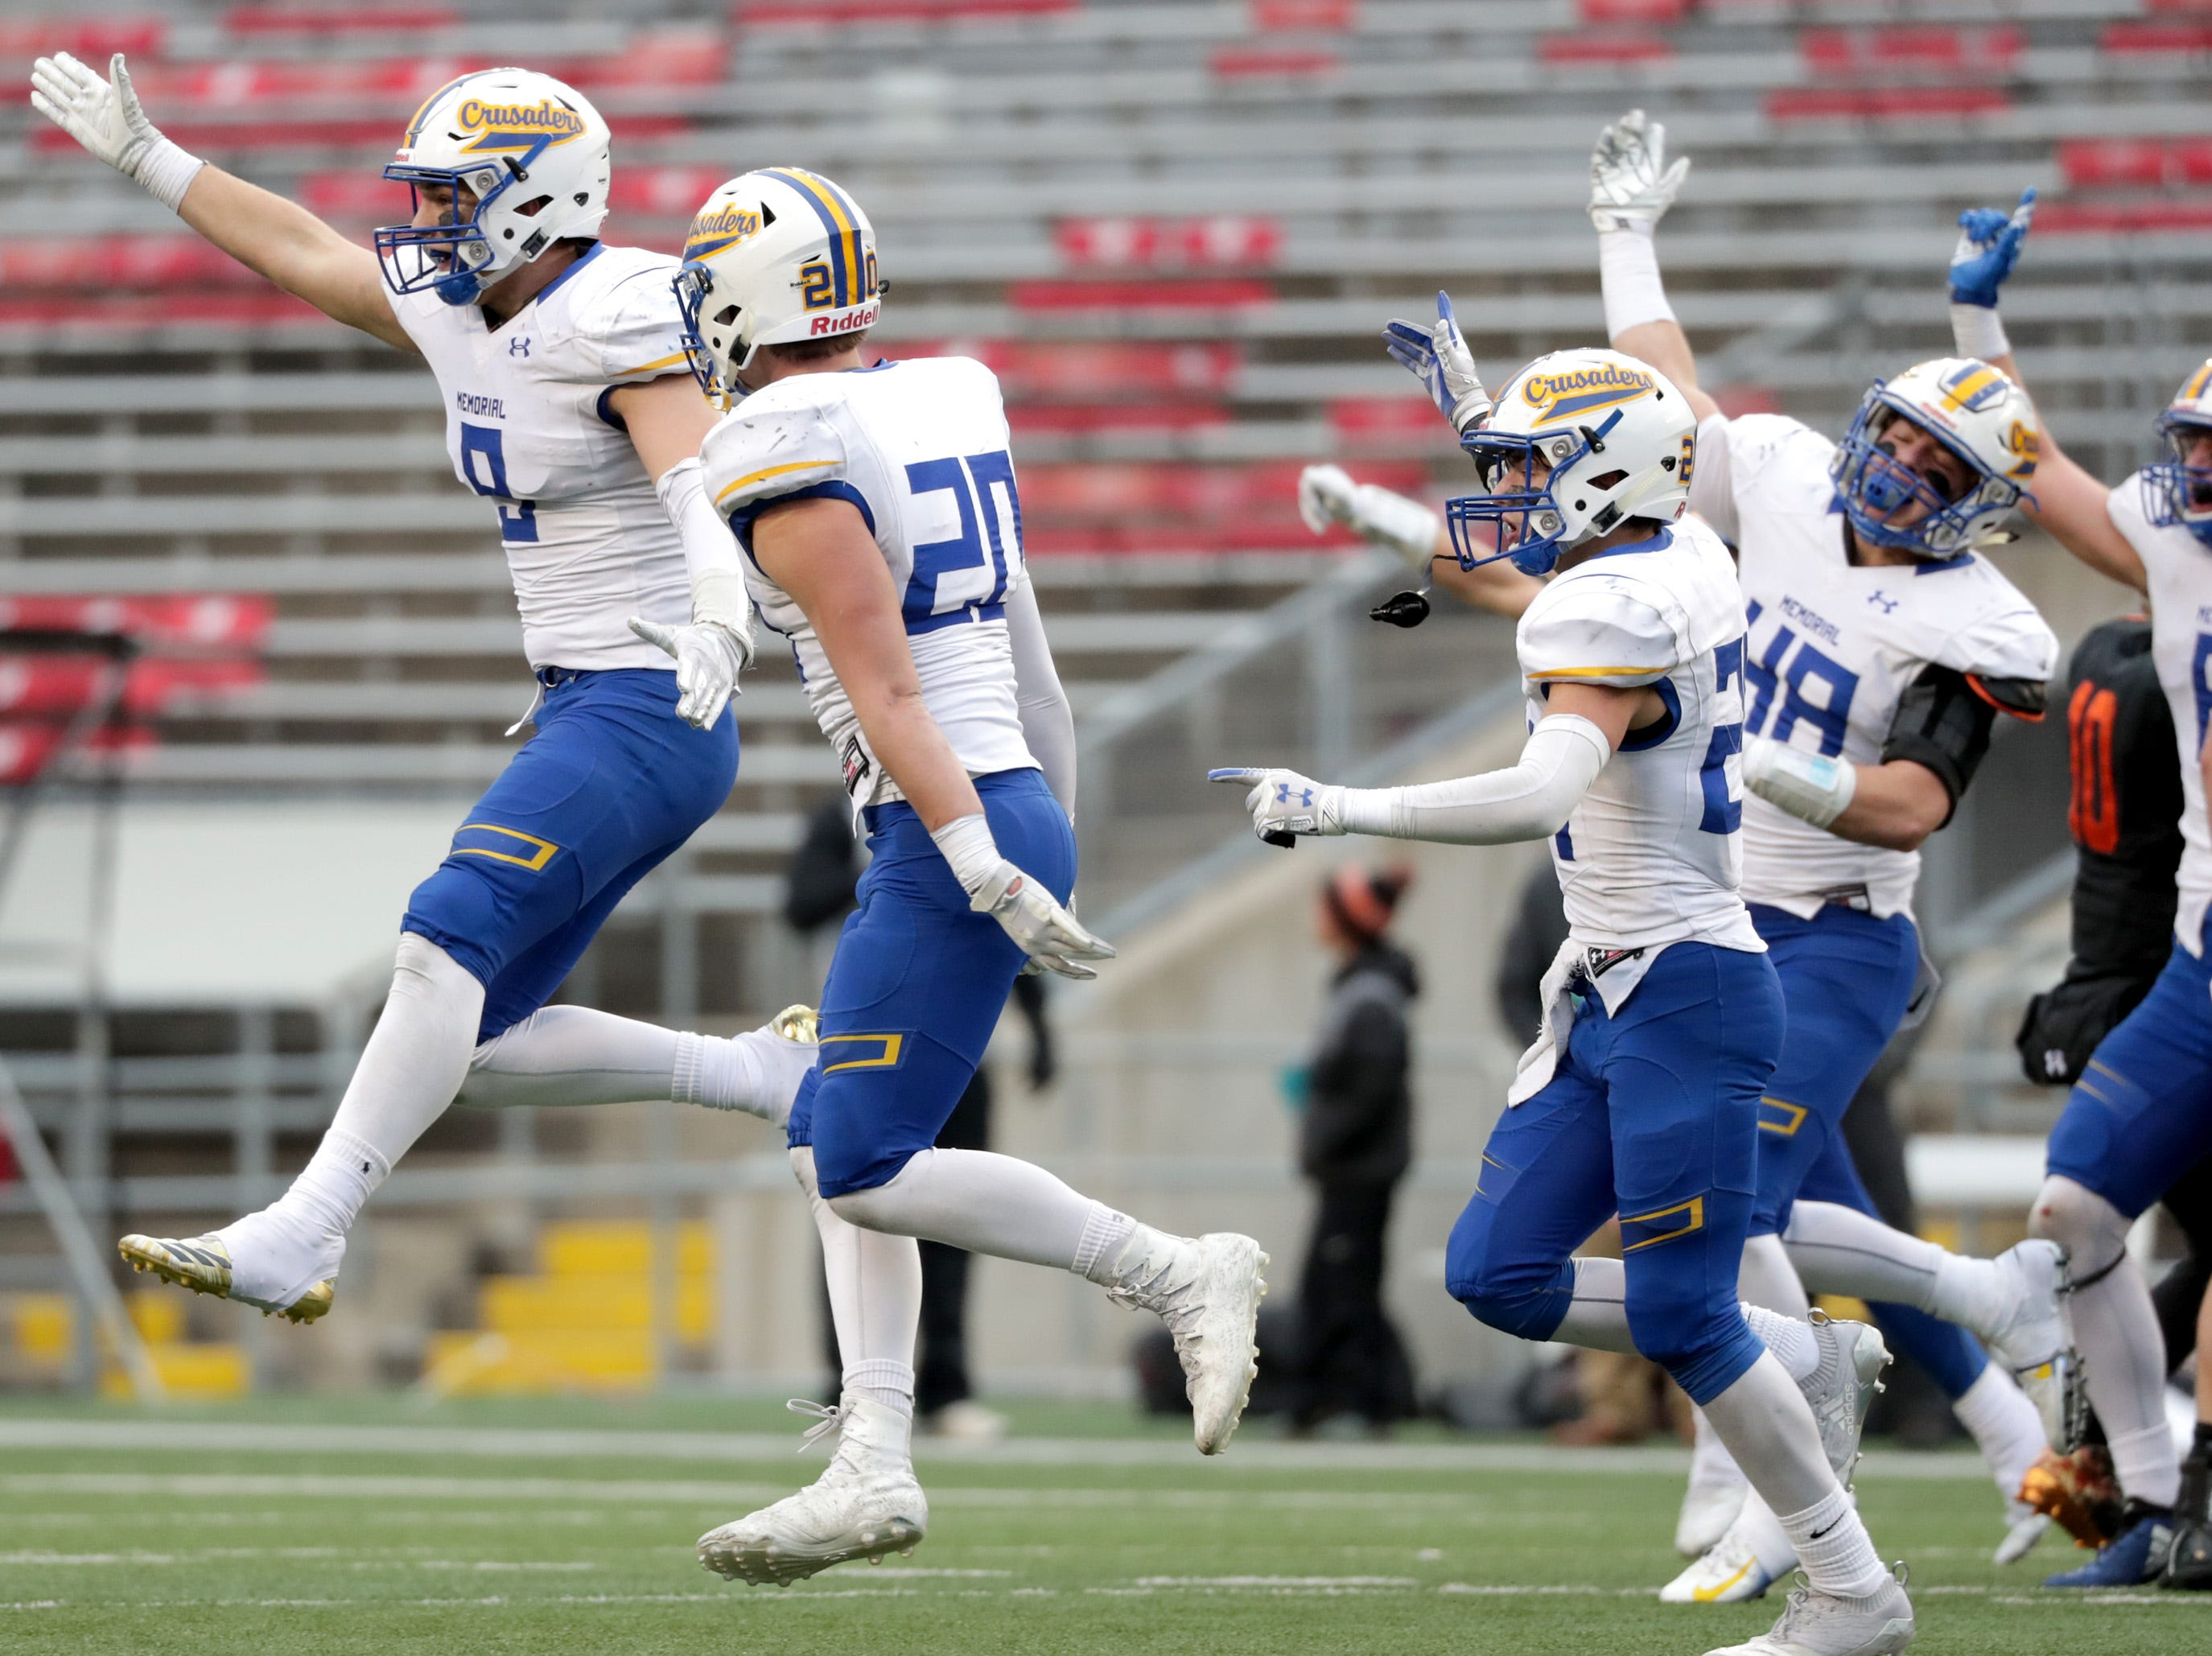 Catholic Memorial High School  players celebrate a fumble recovery in the second half against West De Pere High School during the WIAA Division  3 state championship football game on Friday, November 16, 2018, at Camp Randall in Madison, Wis. Wm. Glasheen/USA TODAY NETWORK-Wisconsin.